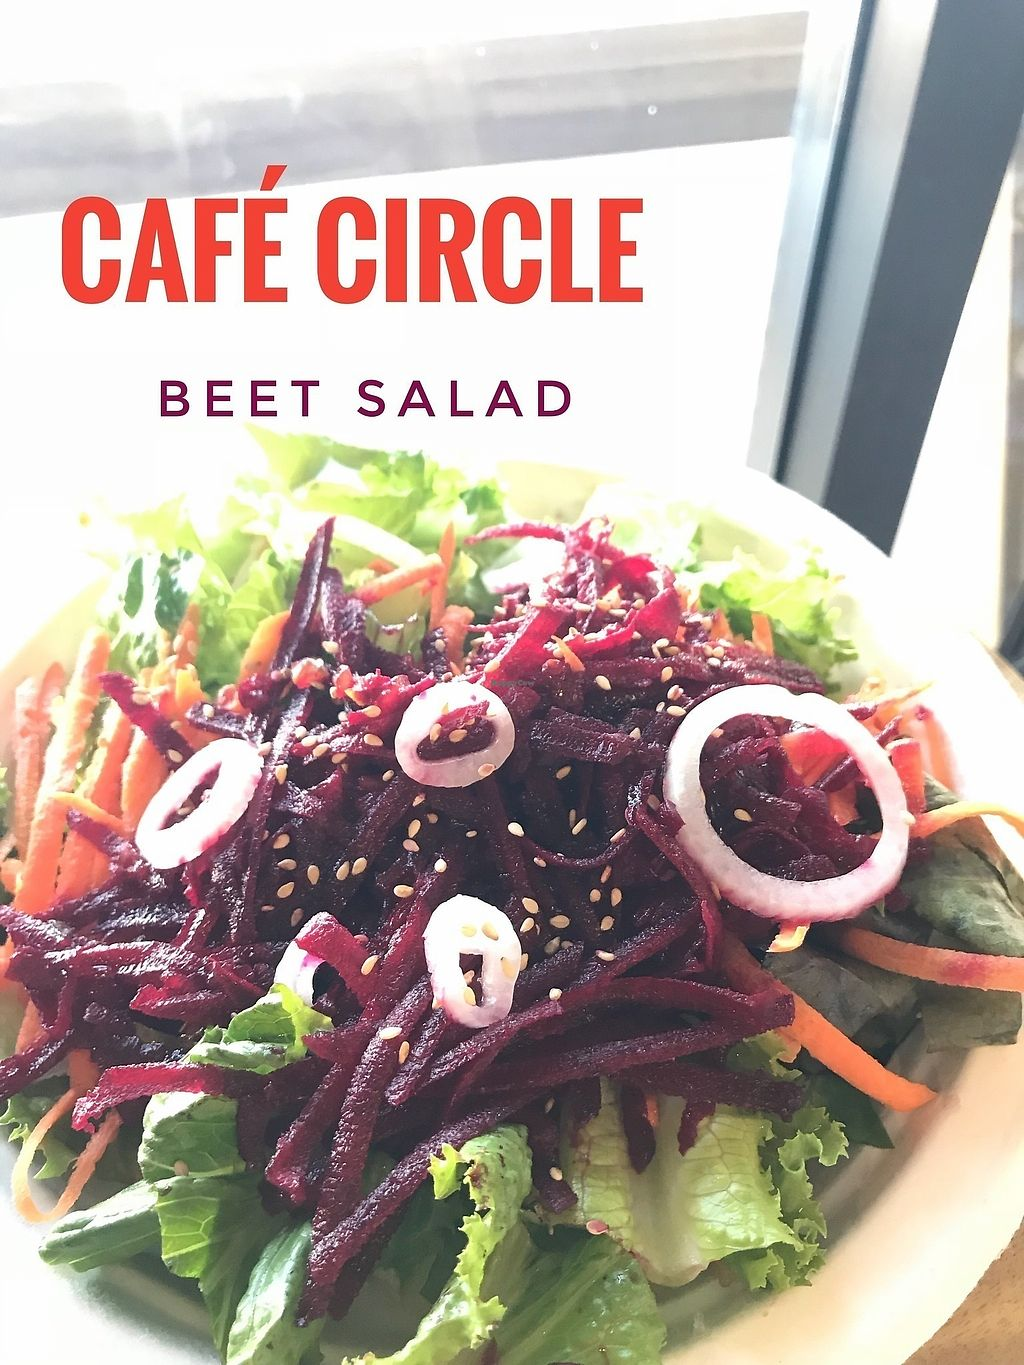 """Photo of Cafe Circle  by <a href=""""/members/profile/happy1"""">happy1</a> <br/>Vegan Beet Salad <br/> January 31, 2018  - <a href='/contact/abuse/image/106681/352972'>Report</a>"""